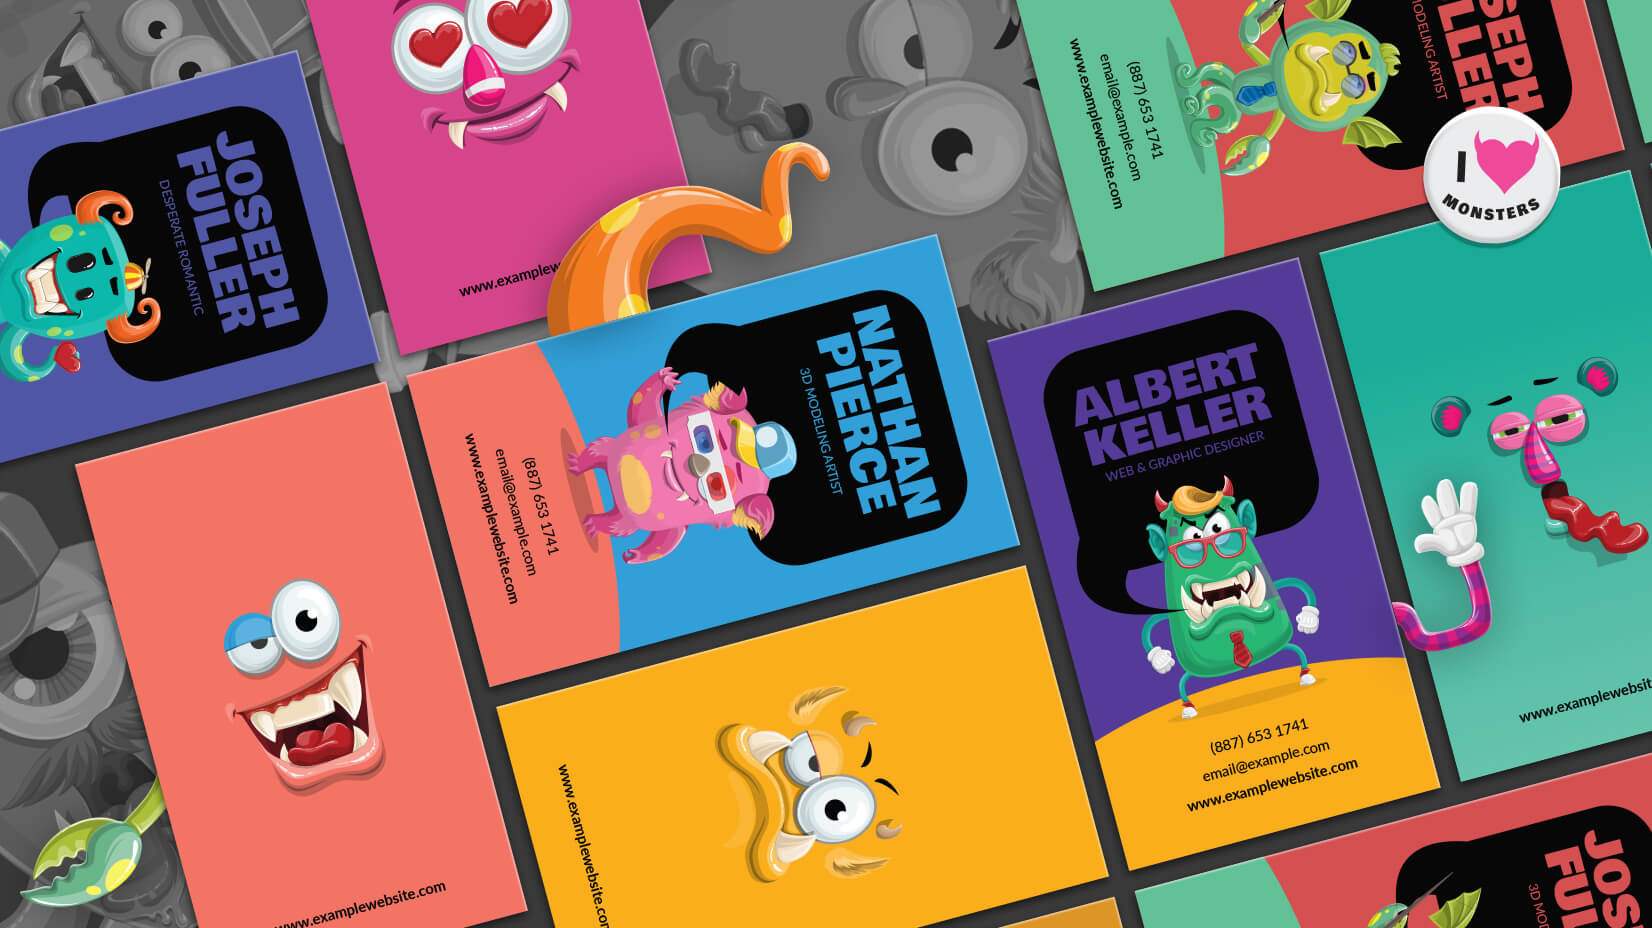 Monster business card template in illustrator tutorial freebie in this tutorial we will create a playful full bleed print ready monster business card template weve decided to go for a monster theme with this one but fbccfo